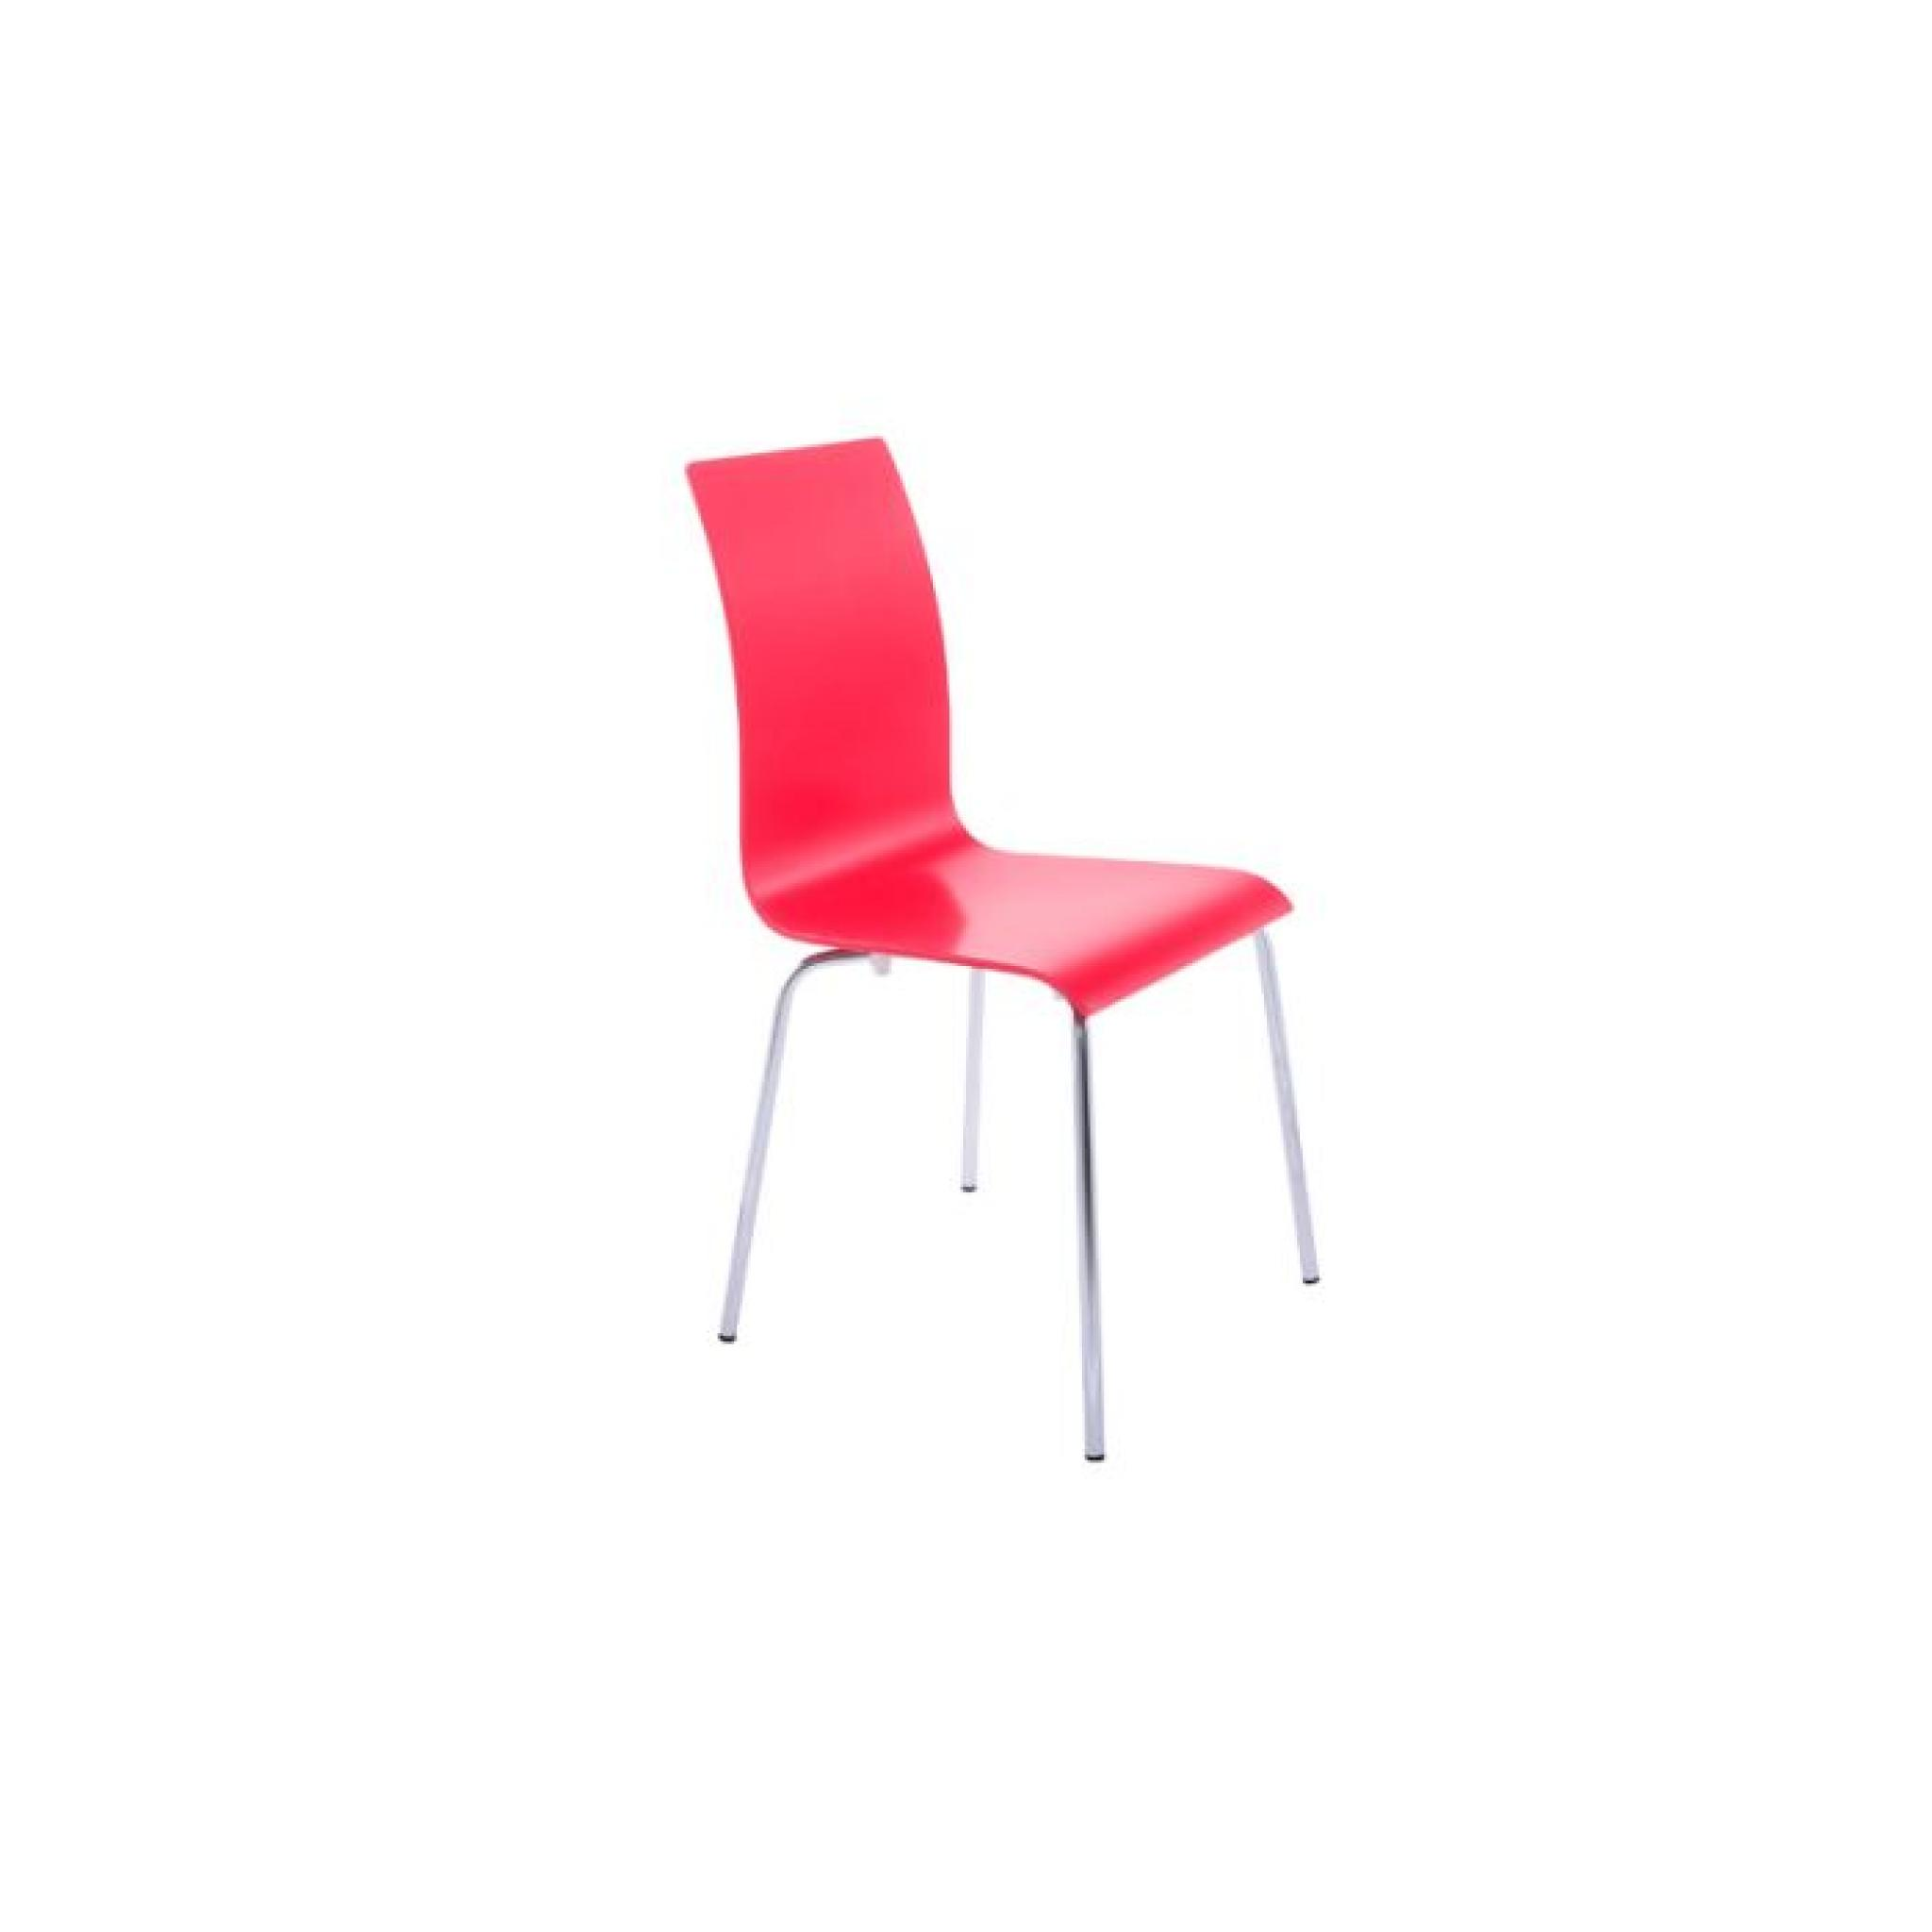 Chaise design AMAZONE Rouge pas cher